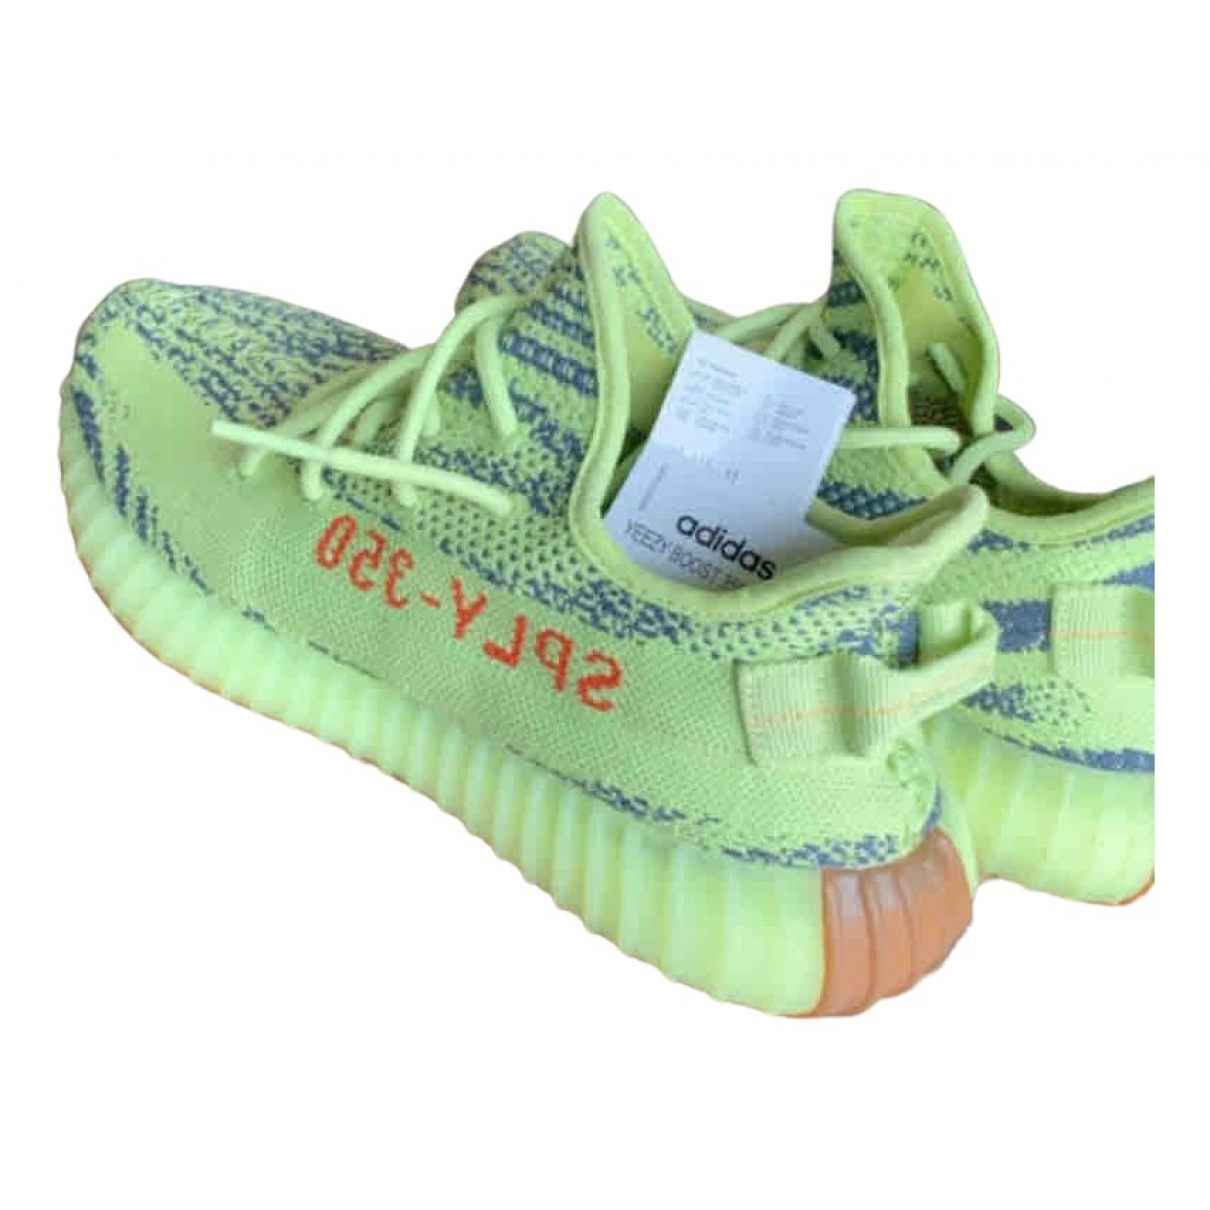 Yeezy X Adidas - Baskets Boost 350 V2 pour homme - jaune